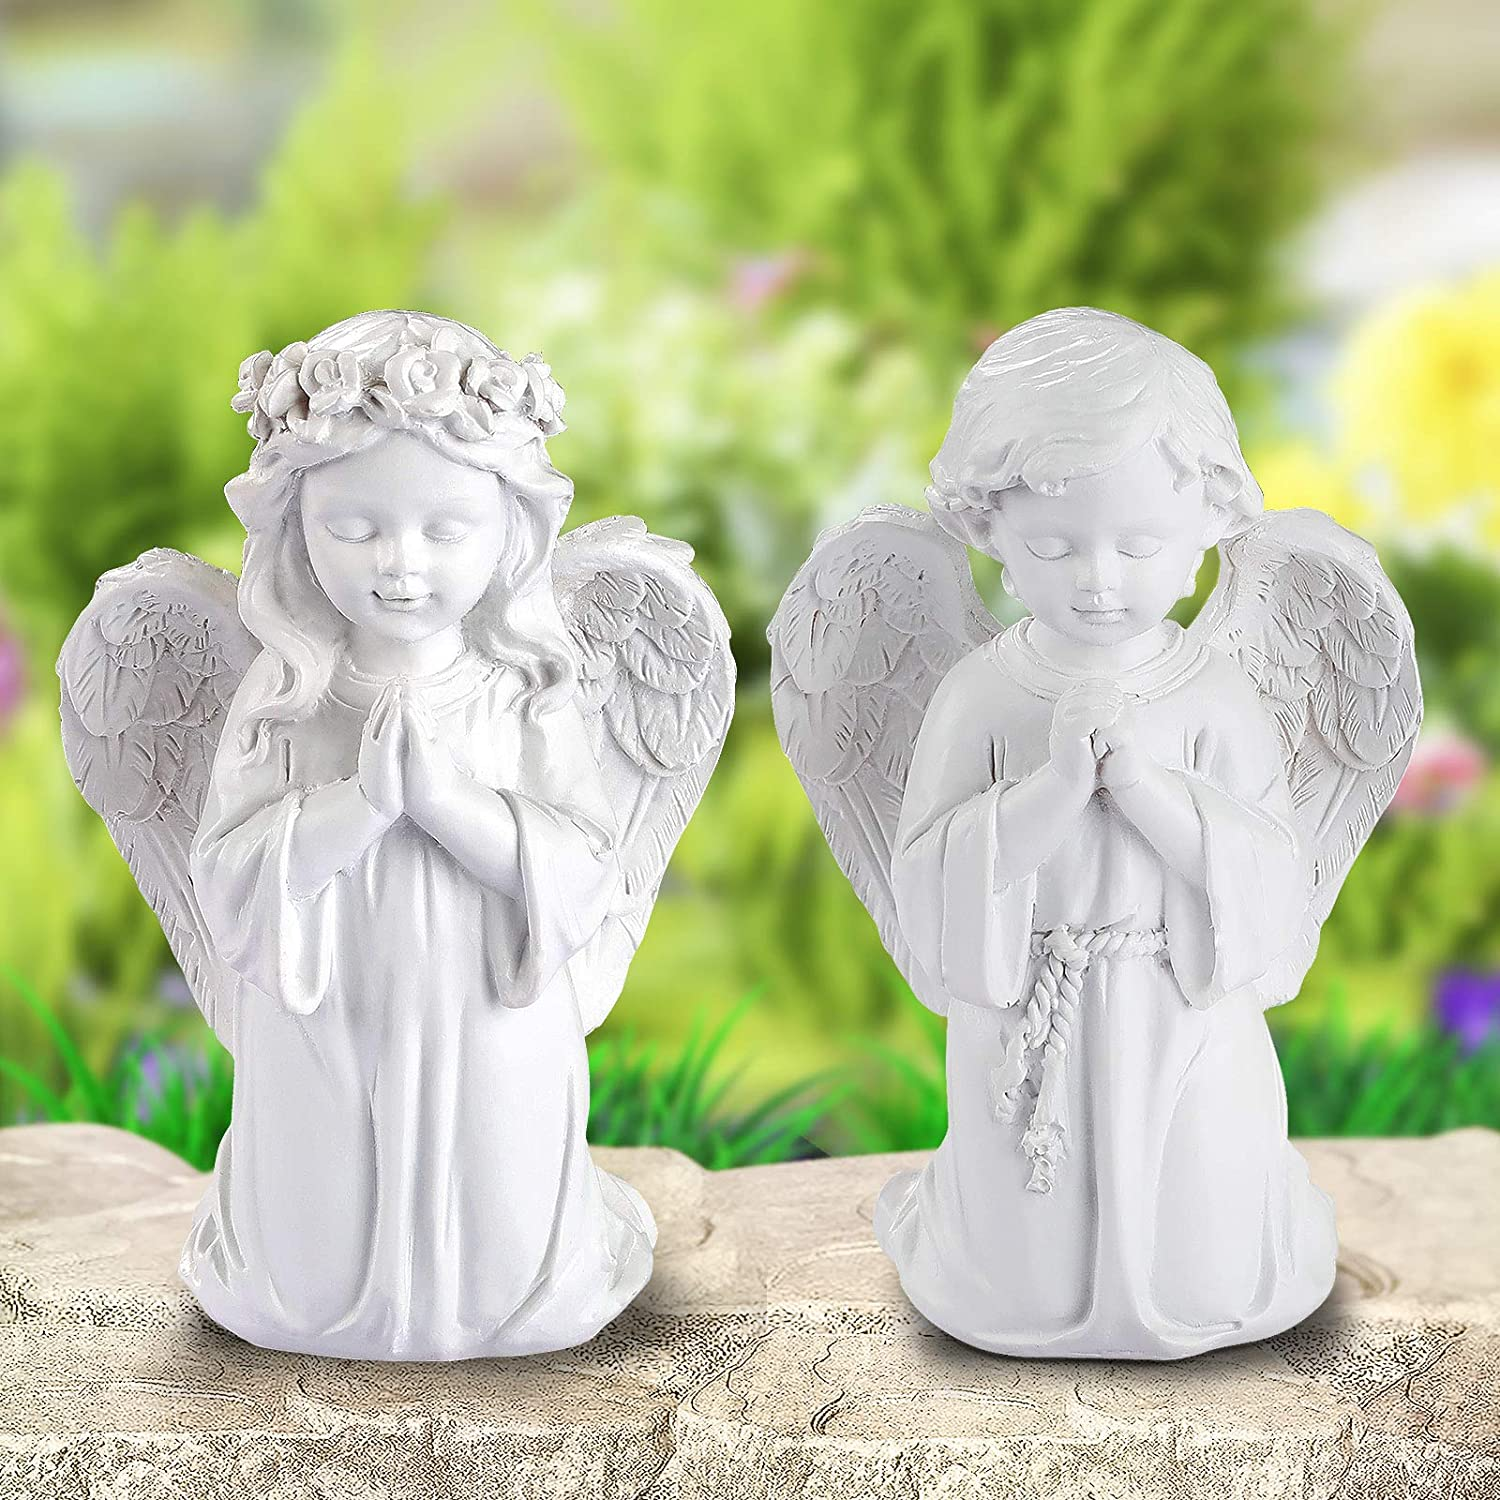 Giftchy Praying Angel Statue Set of 2, Adorable Boy and Girl Angel Figurine for Home & Garden Decorations, Memorial Resin Angel Sculpture for Outdoor and Indoor Decor & Wedding Gifts (6